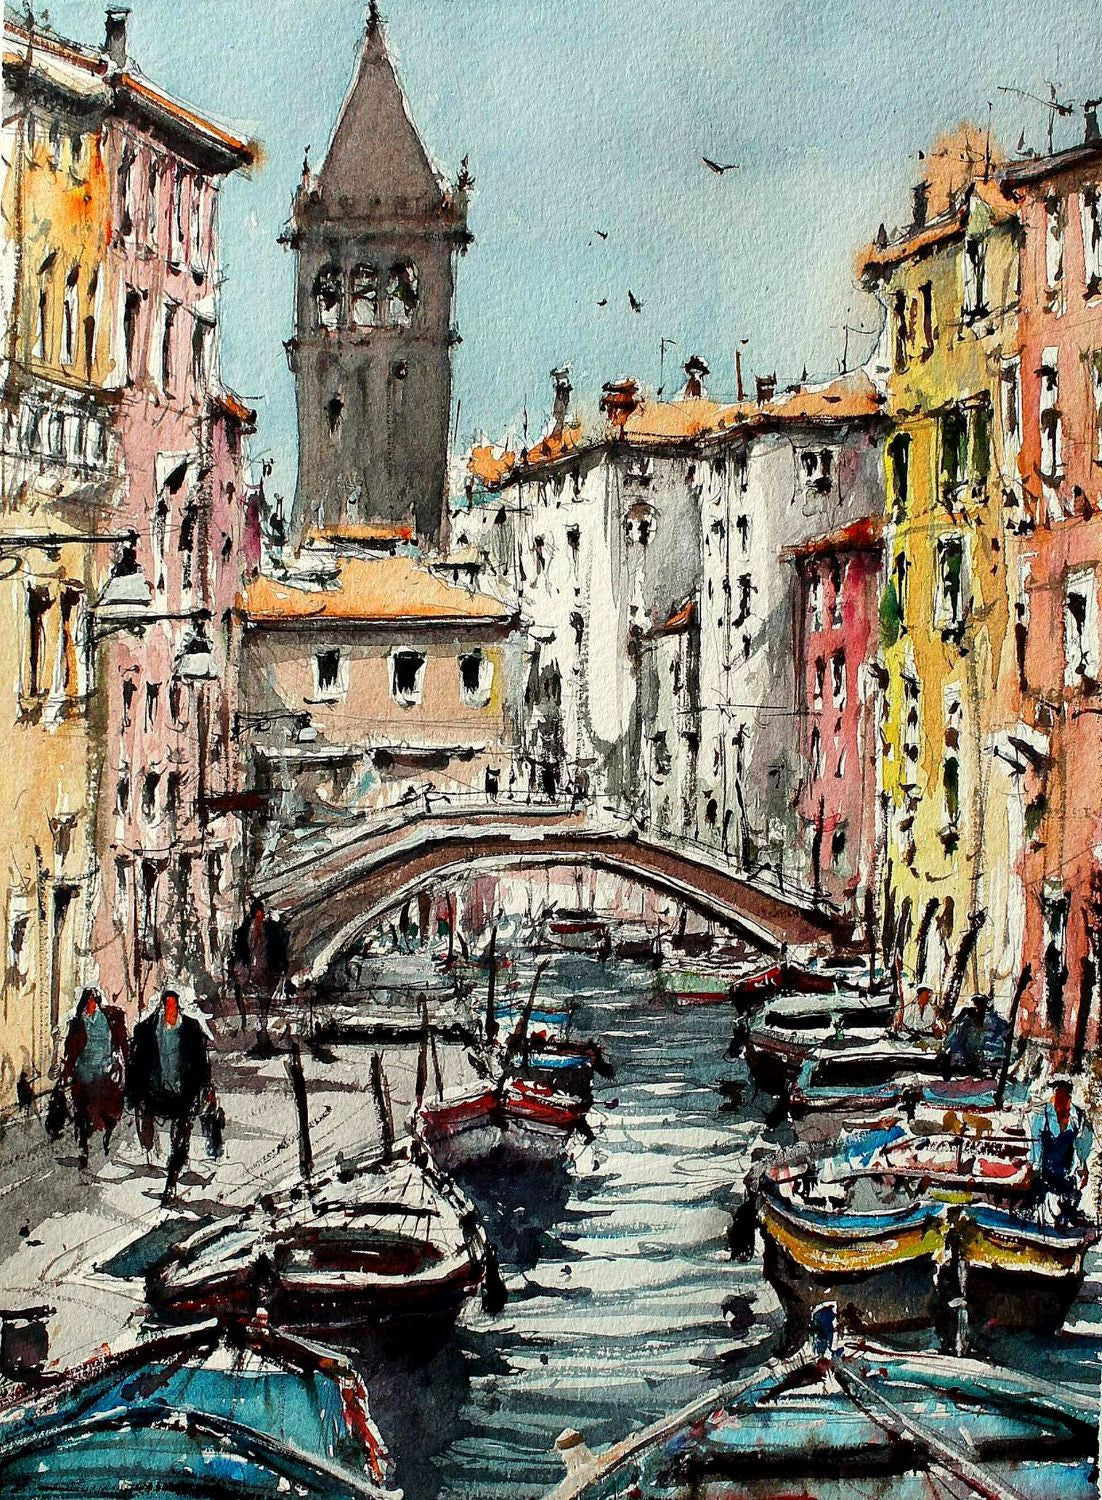 Painting Of Gondolas Along The Grand Canal In Venice - Large Art Prints